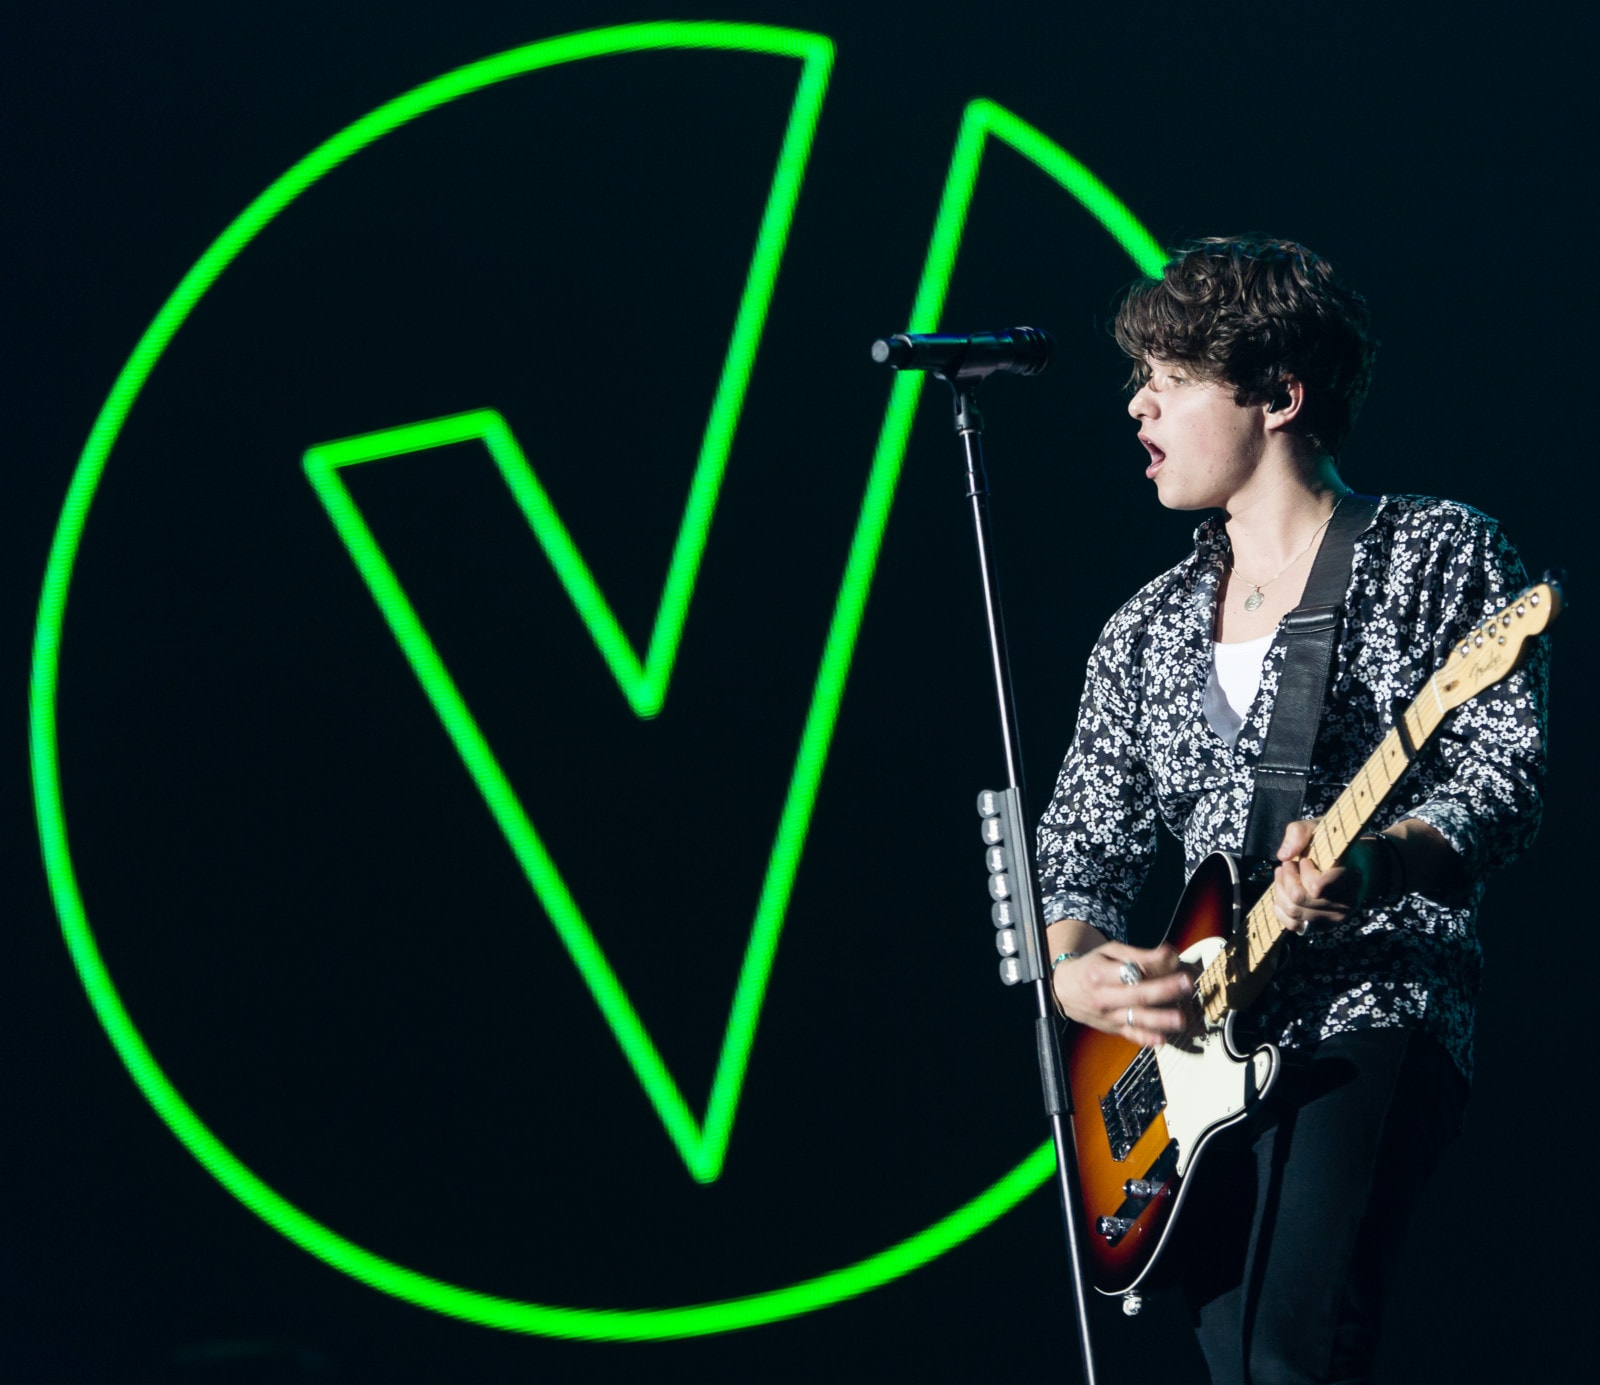 the-vamps-london-freelance-photographer-richard-isaac-3200